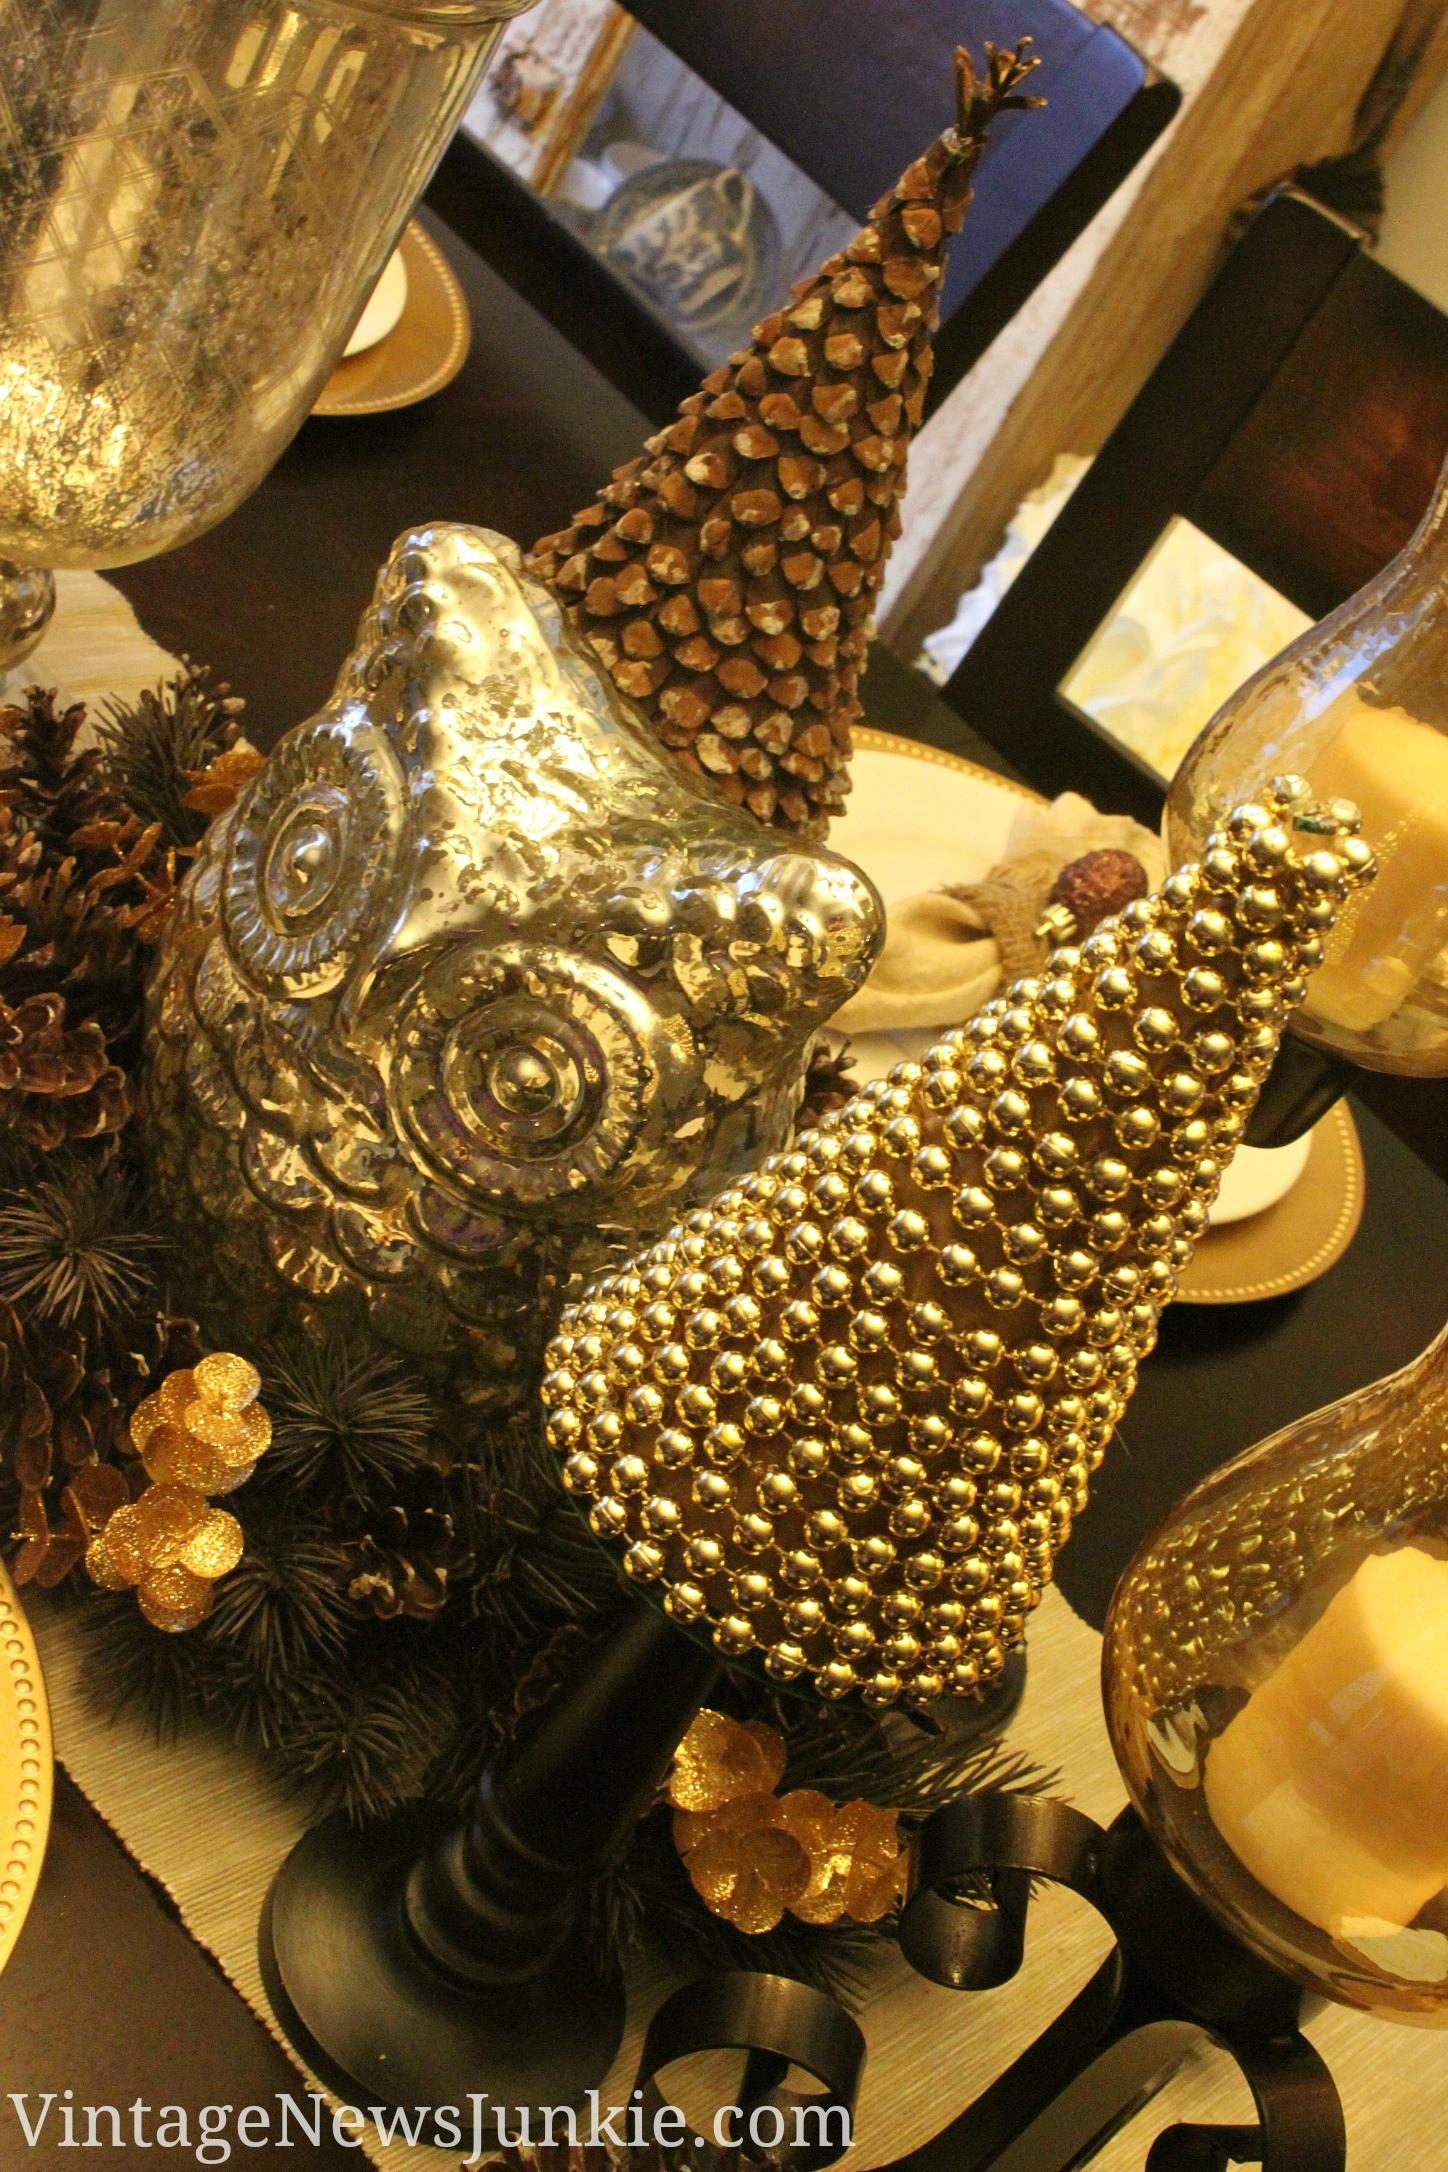 Upcycled Sparkly Christmas Tree Gold Beads Cemetery Vase